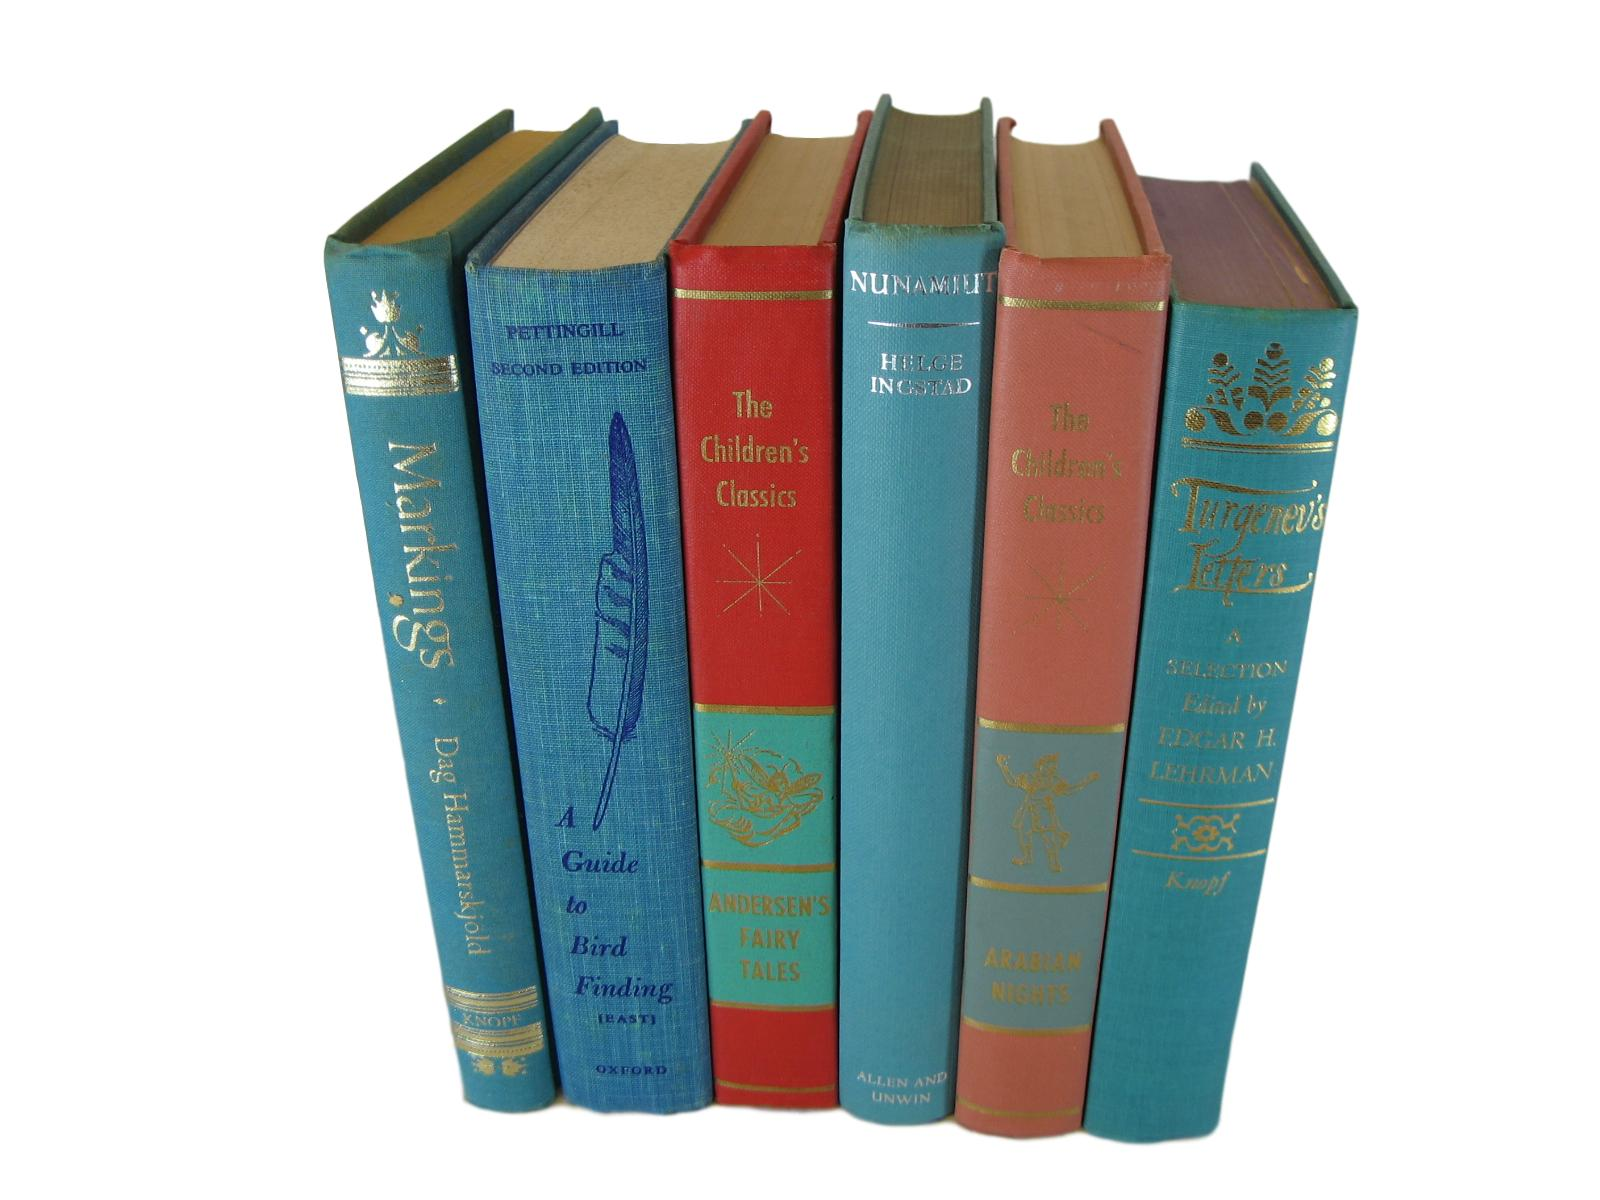 Turquoise Aqua Decorative  Books for Designer Book Decor, S/6 - Decades of Vintage